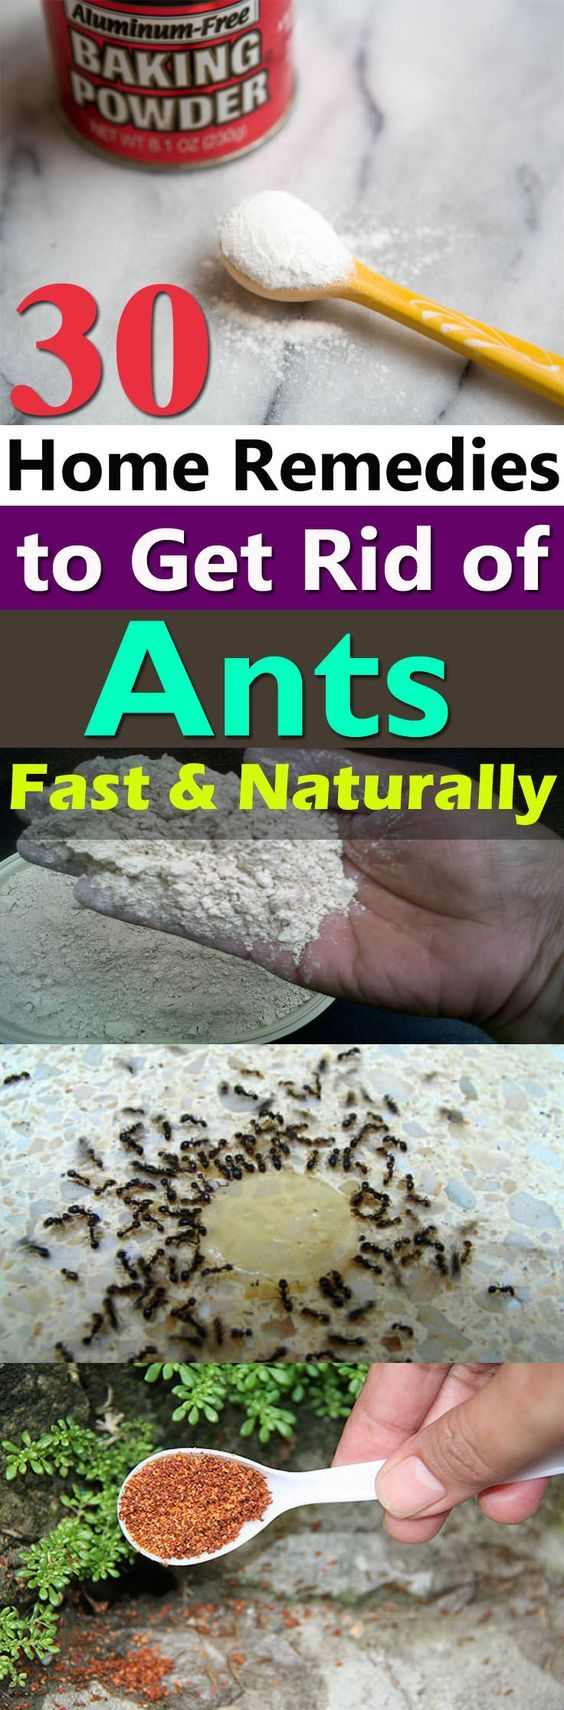 New  Natural Home Remedies To Get Rid of Ants From Home u Garden